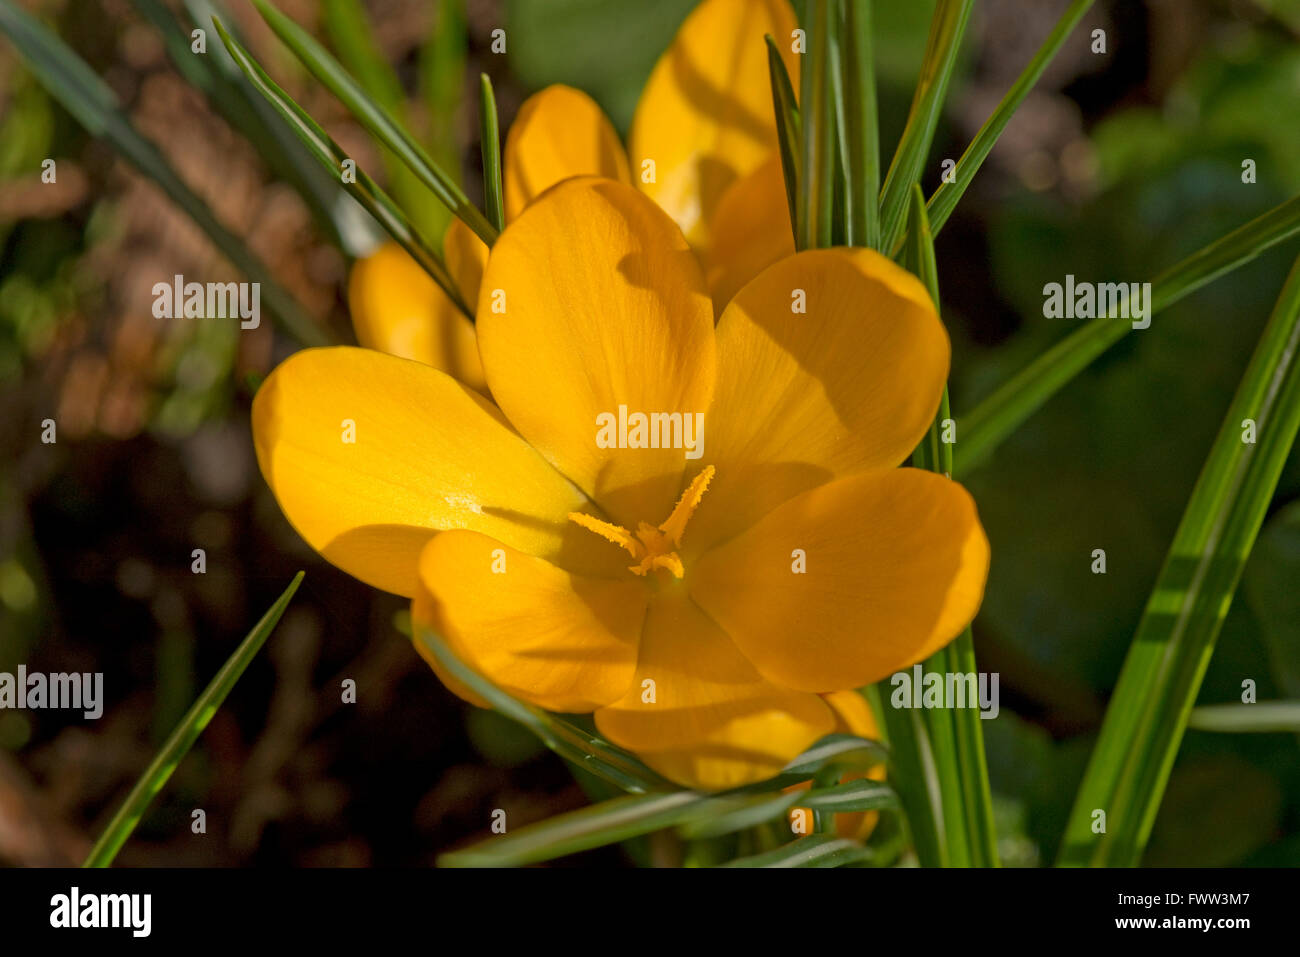 Flower of a yellow crocus with yellow anthers and stigmata, February - Stock Image